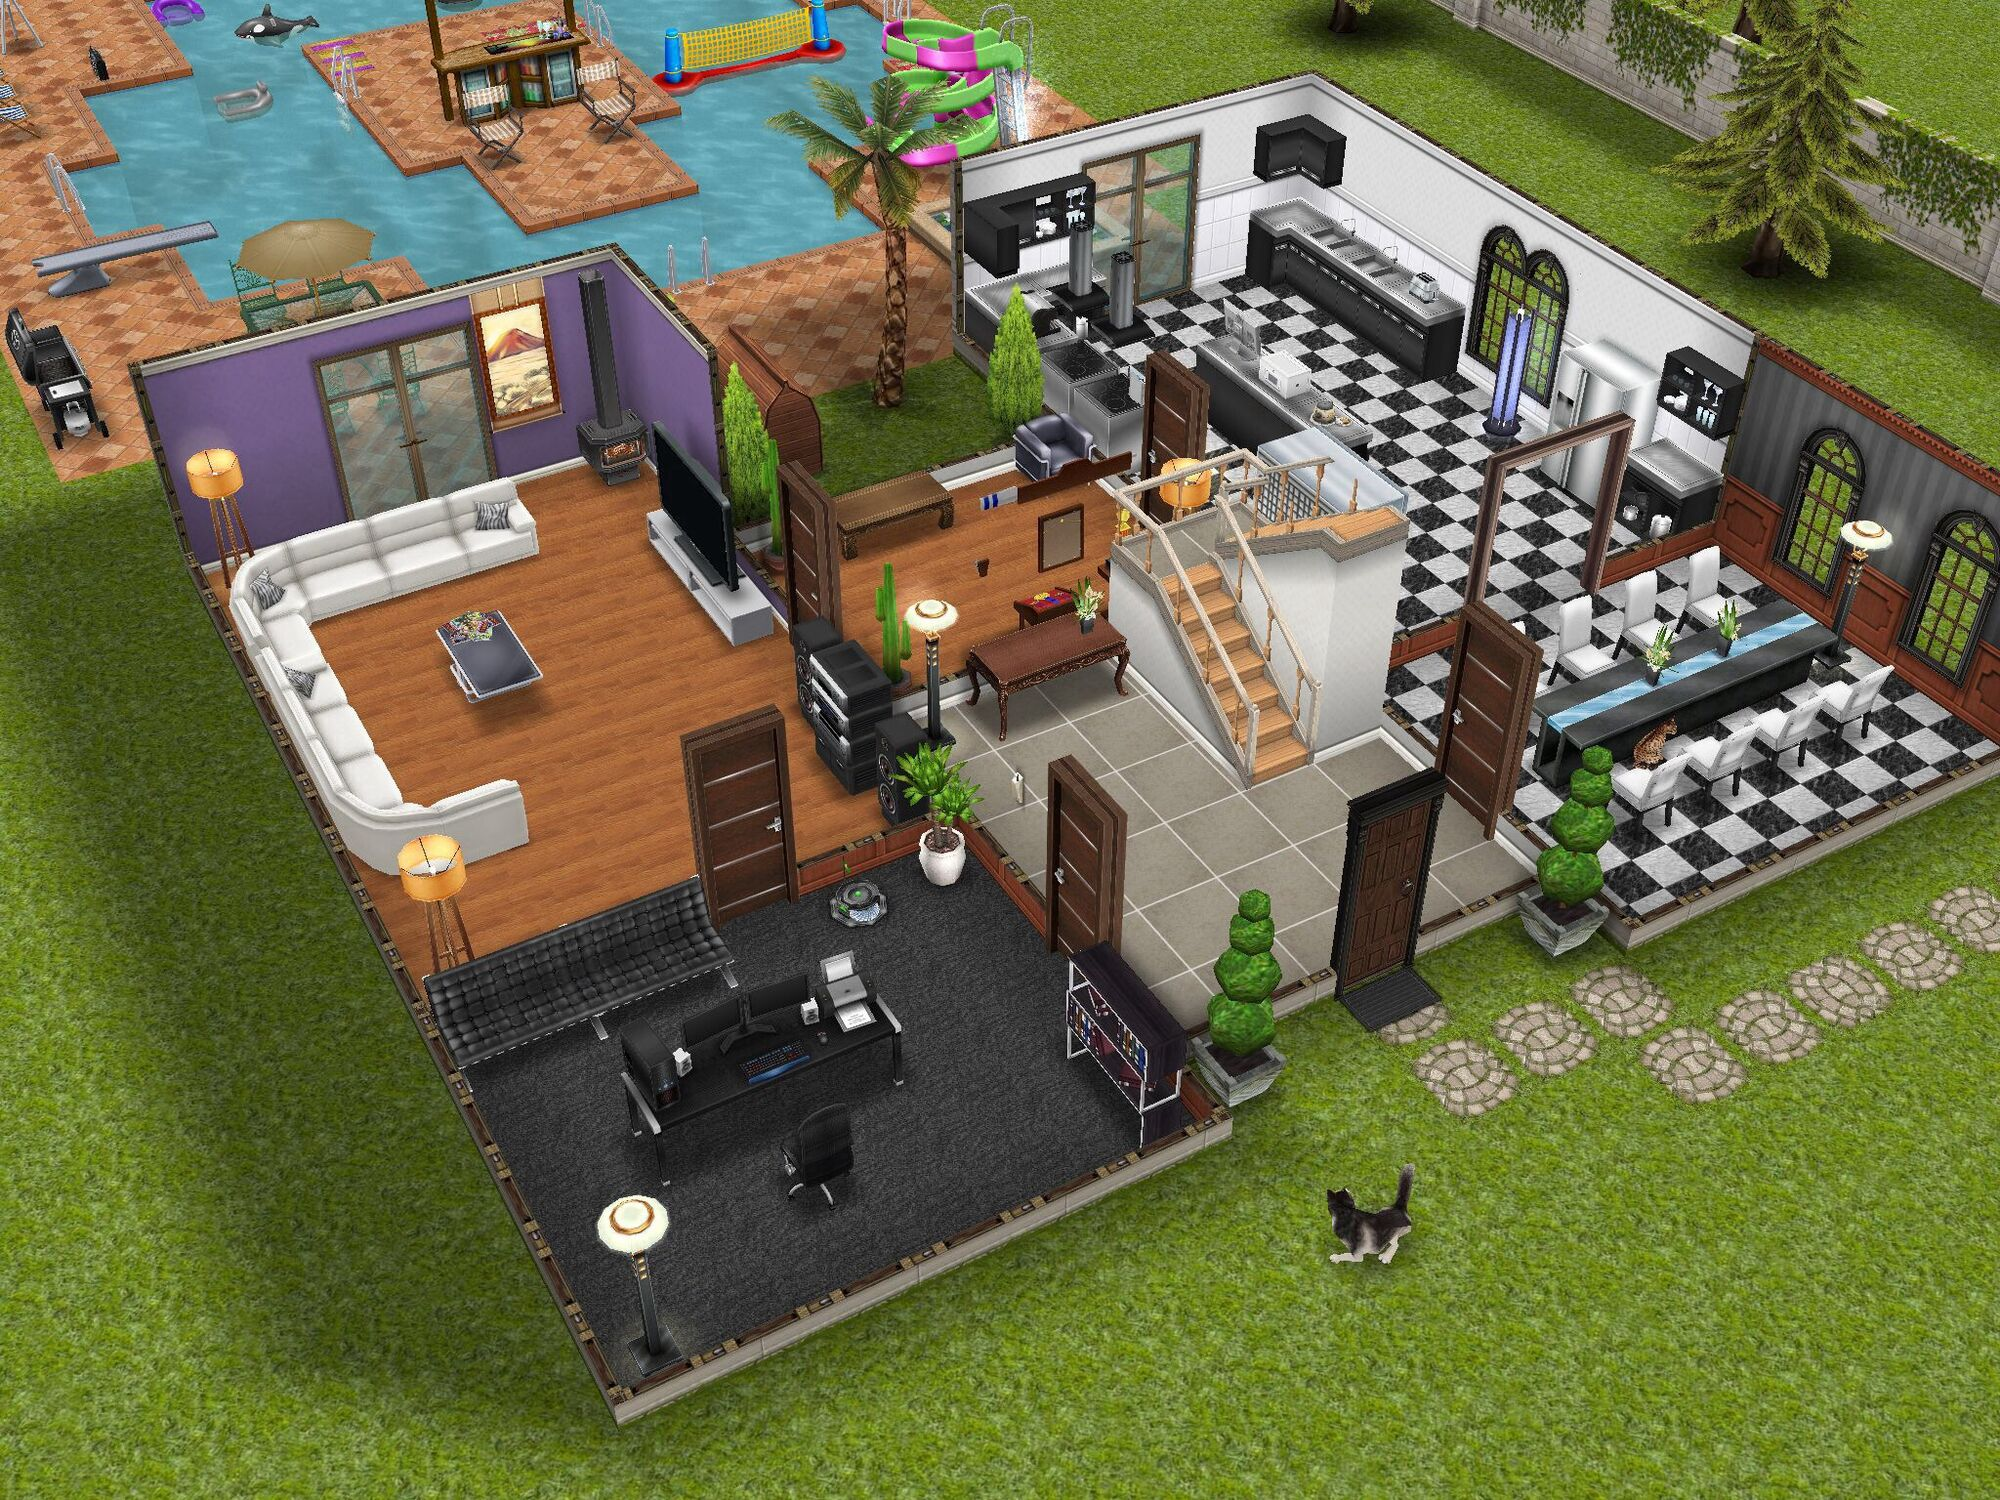 Emejing Sims Freeplay Home Design Gallery - Amazing Design Ideas ...